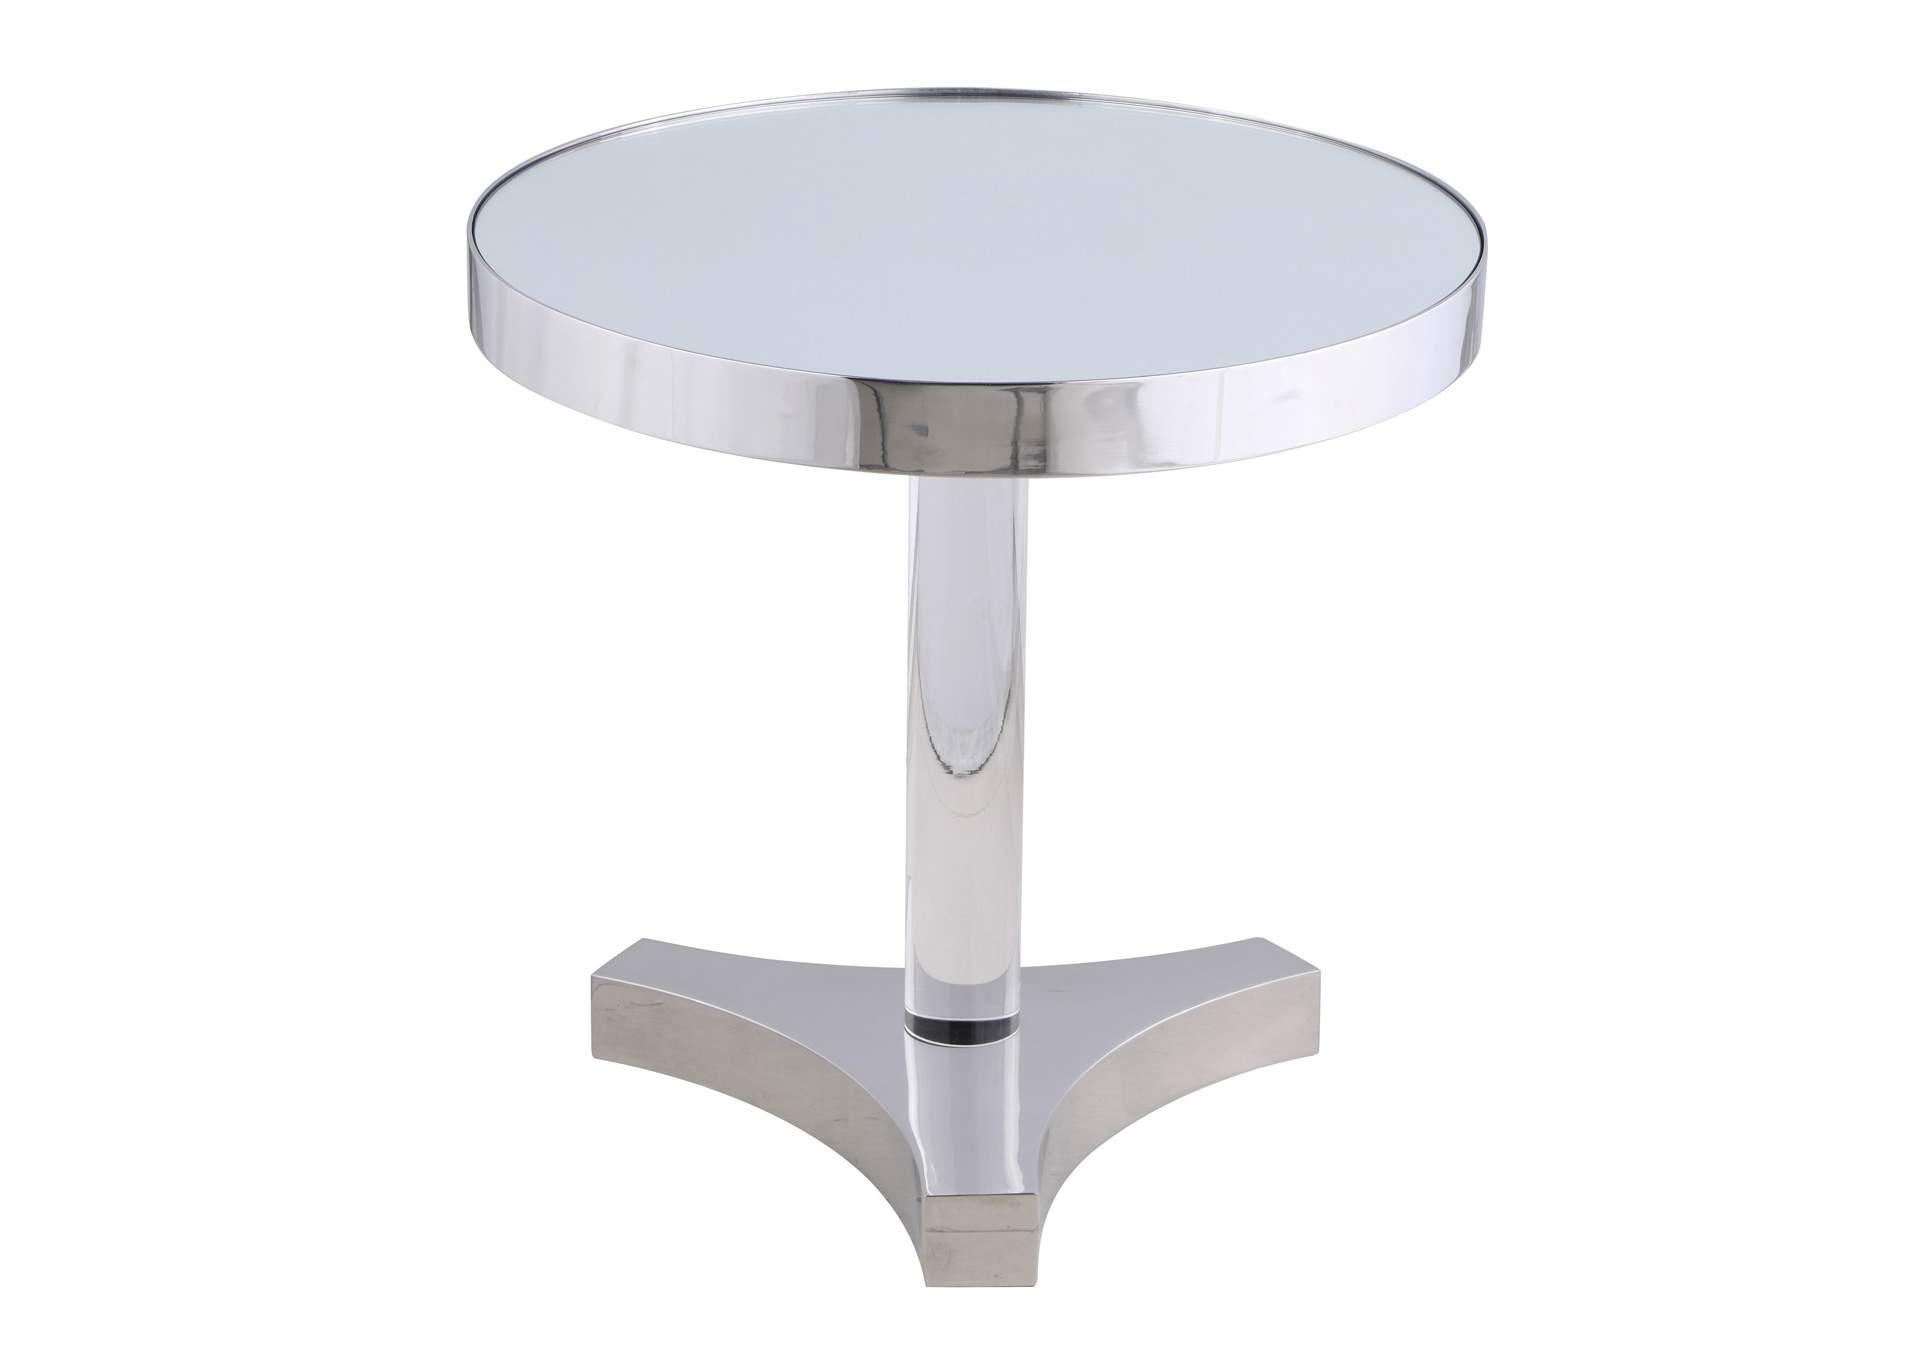 Lamp Table w/ Mirror Accent,Chintaly Imports